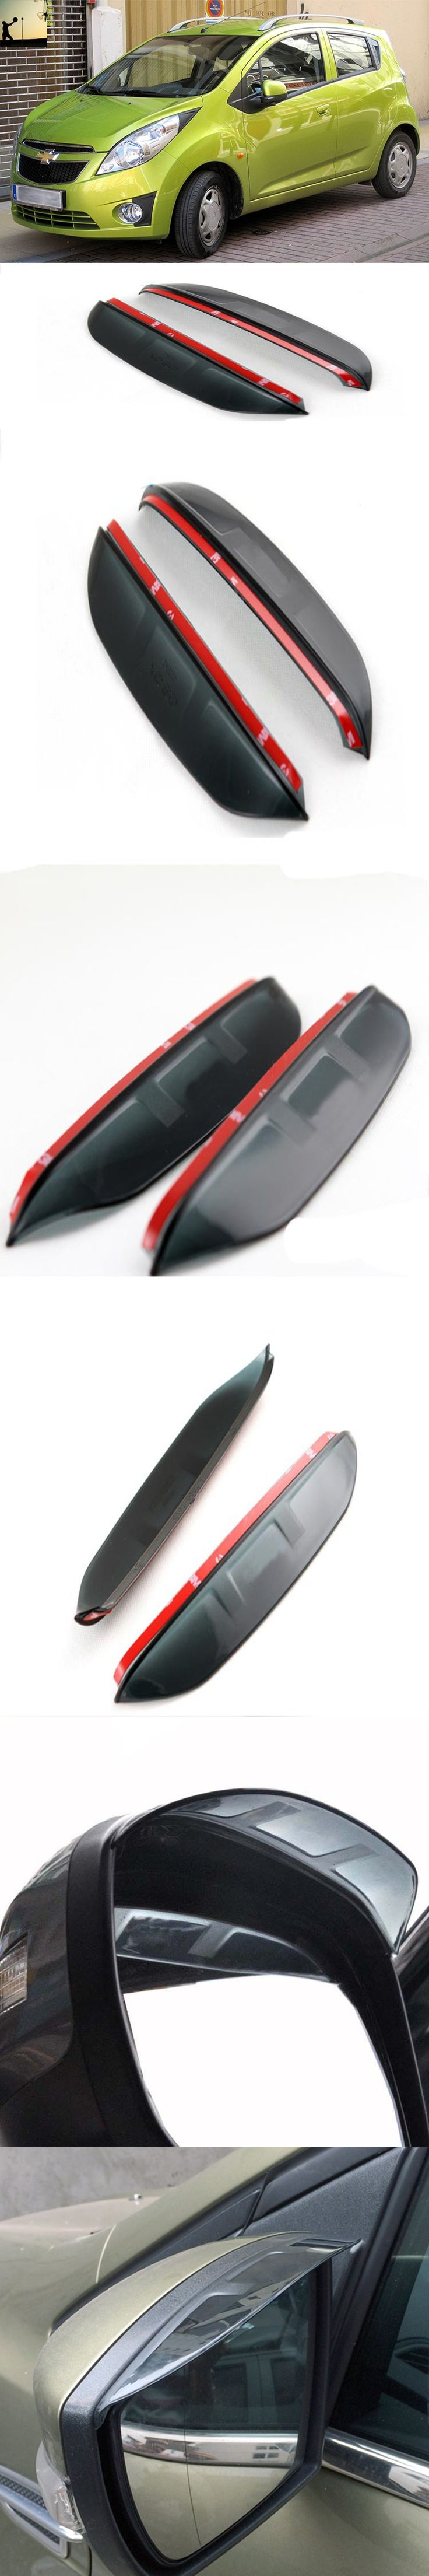 For Third generation Chevrolet SPARK M300 2009 to 2015 Rearview mirror rain eyebrow reflective mirror side mirror rain visor